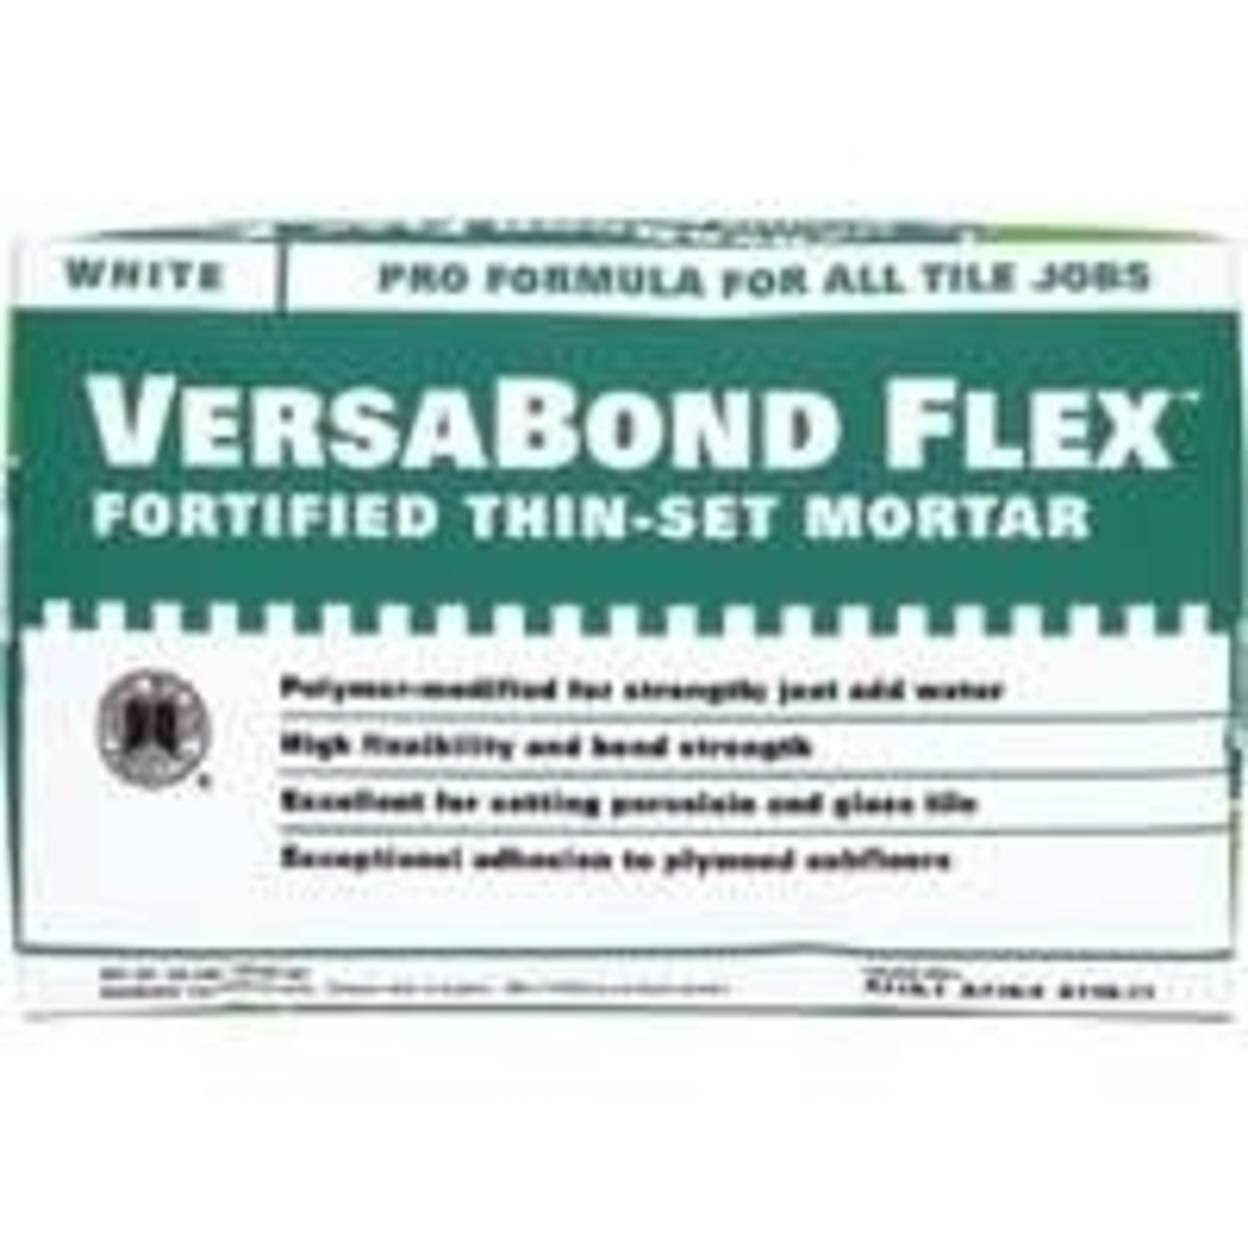 Versabond Flex VBFW50 Fortified Thin-set Mortar - 50lbs, White